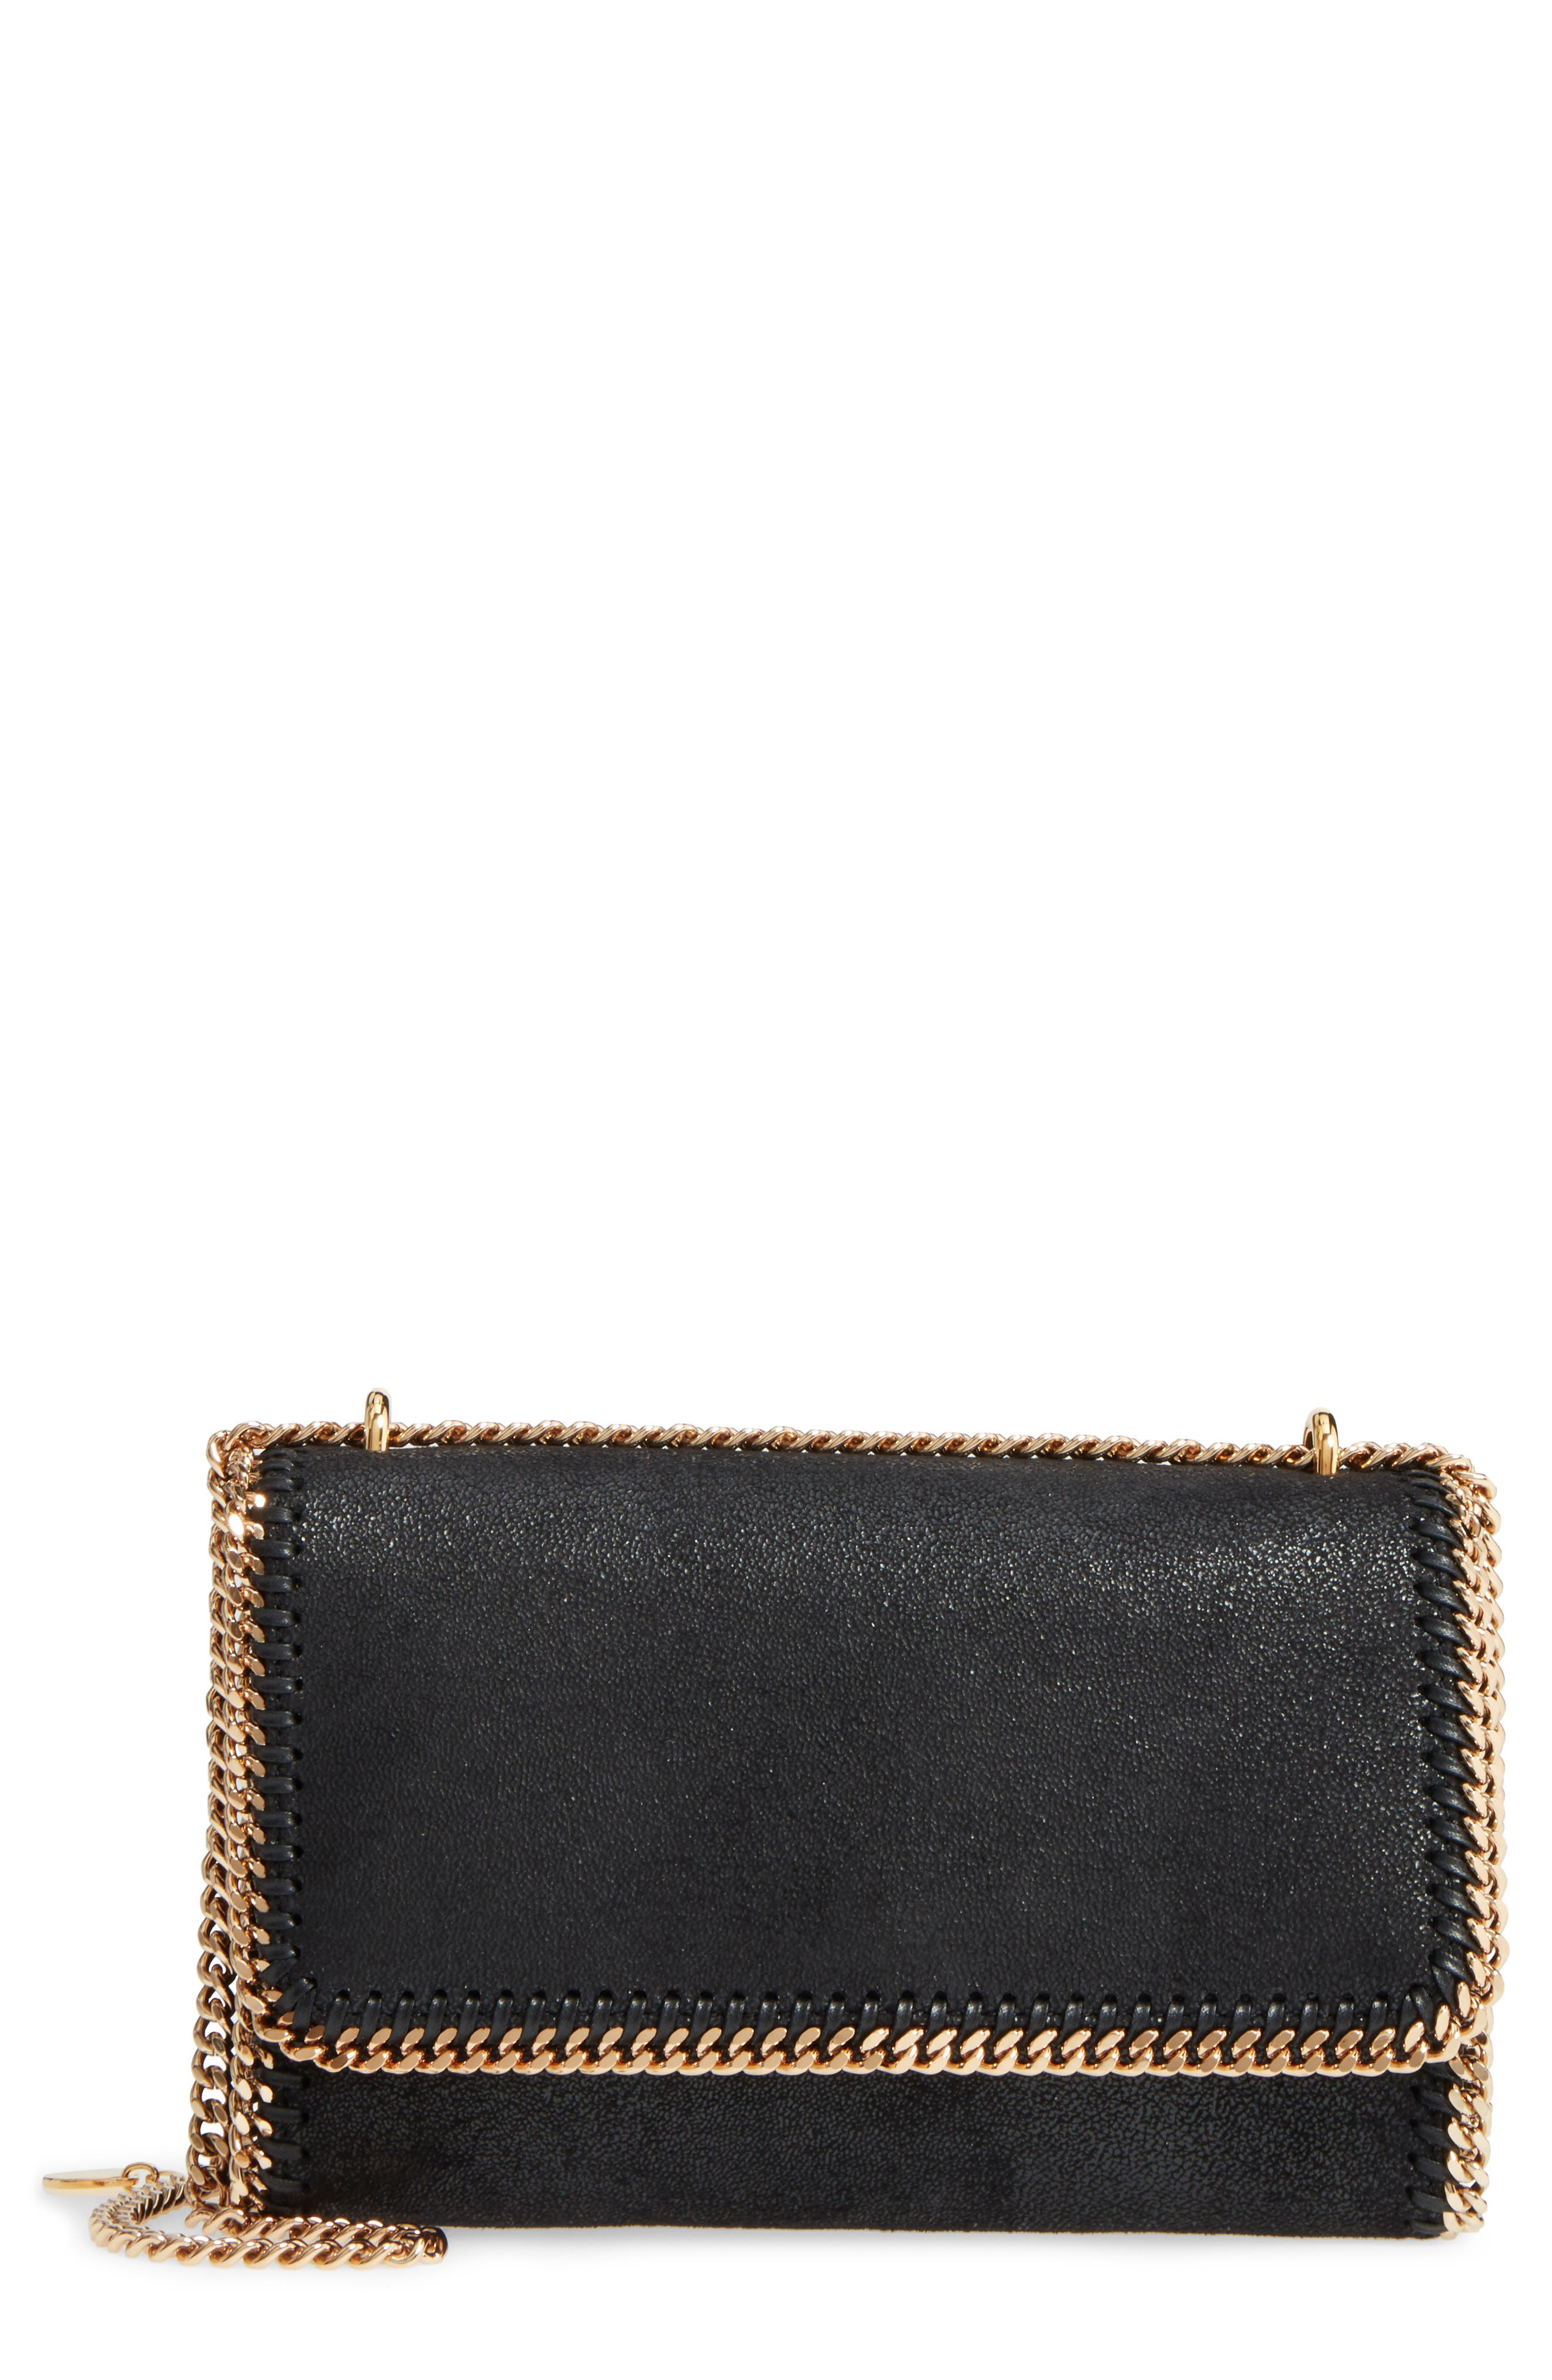 Alternate Image 1 Selected - Stella McCartney Falabella Shaggy Deer Faux Leather Shoulder Bag